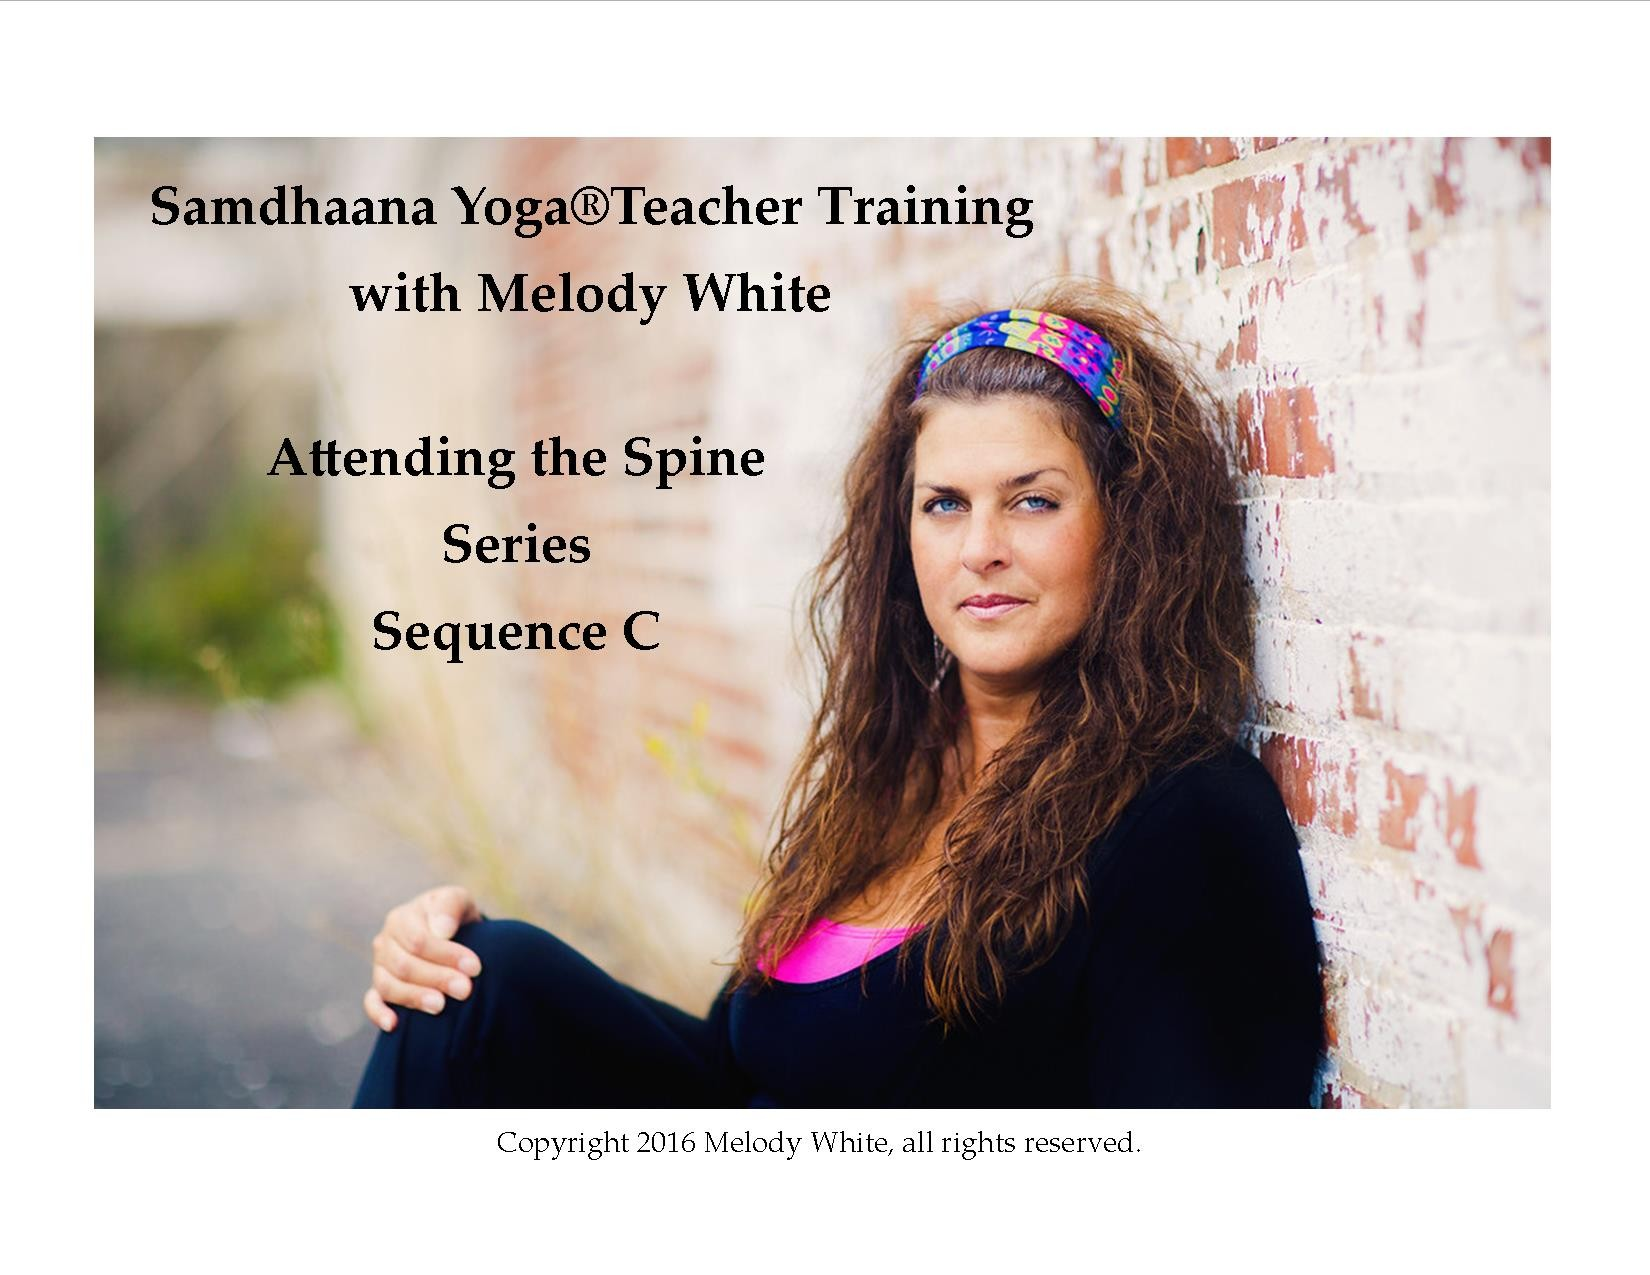 Samdhaana Yoga Attending the Spine